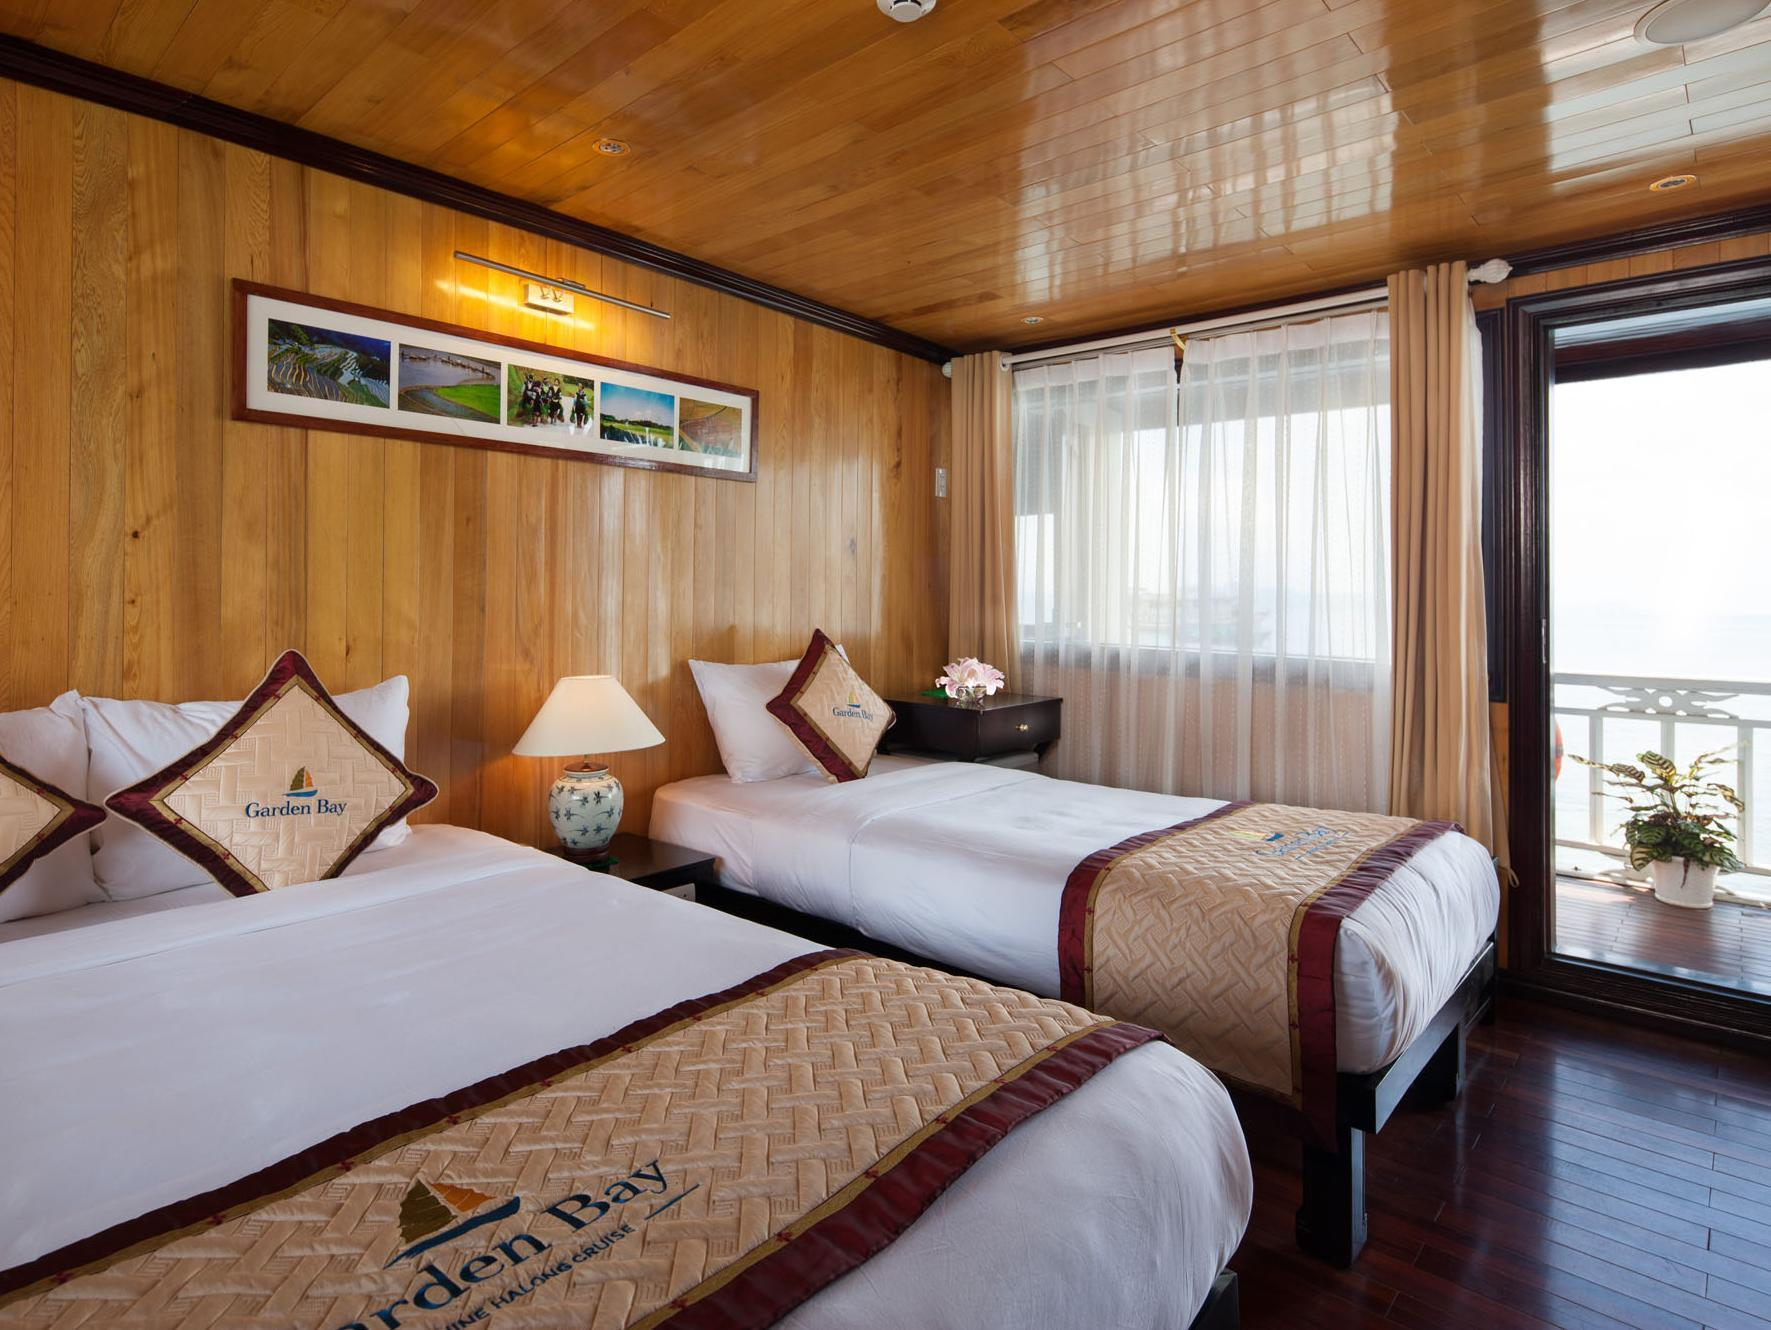 Deluxe Triple Room with Balcony - 3 Days 2 Nights